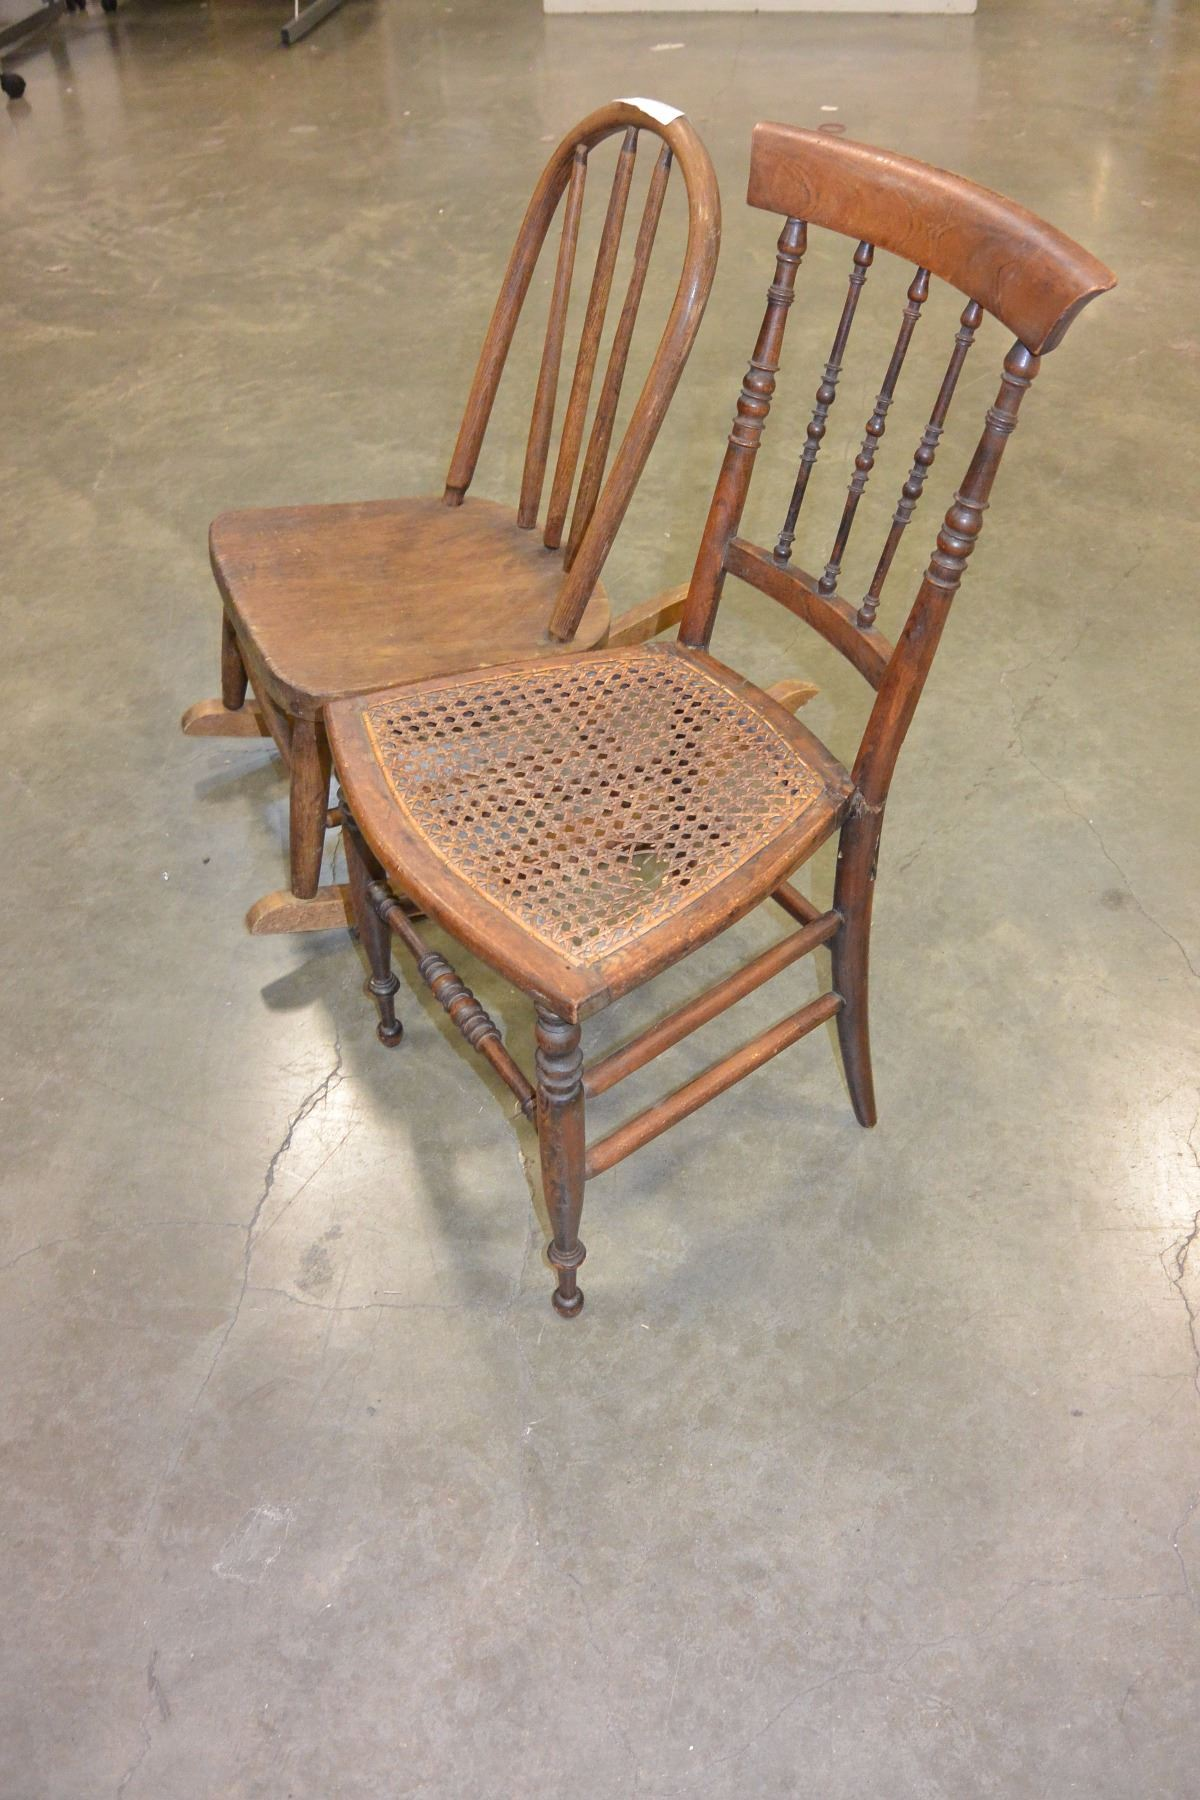 1920s rocking chair clear desk kids and hand made bentwood image 2